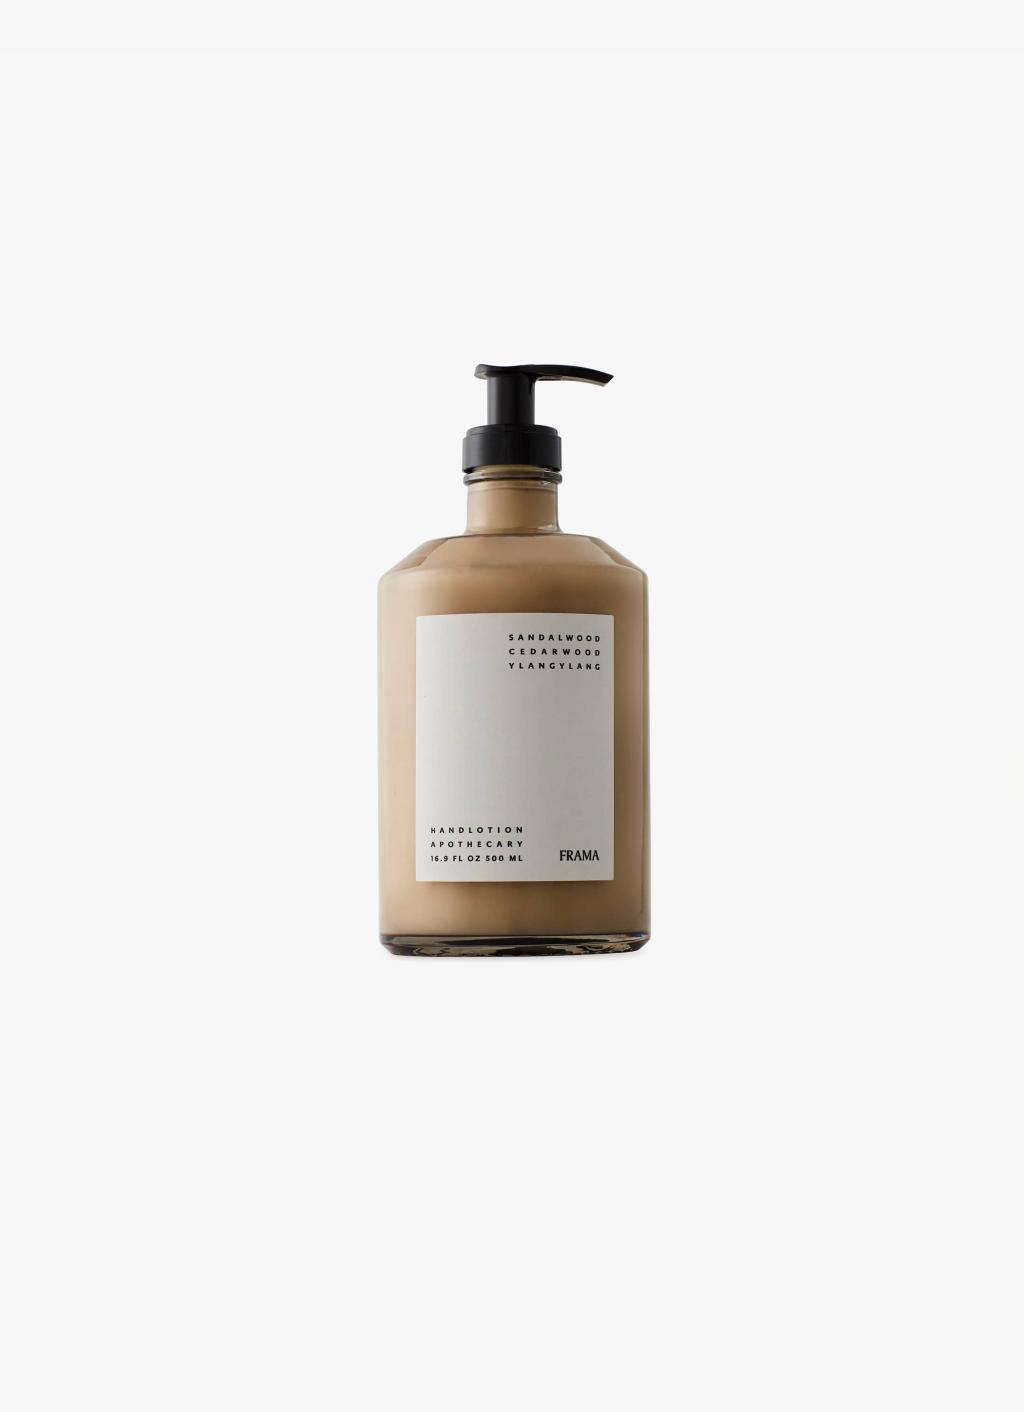 Frama - Apothecary - Hand Lotion - 500ml